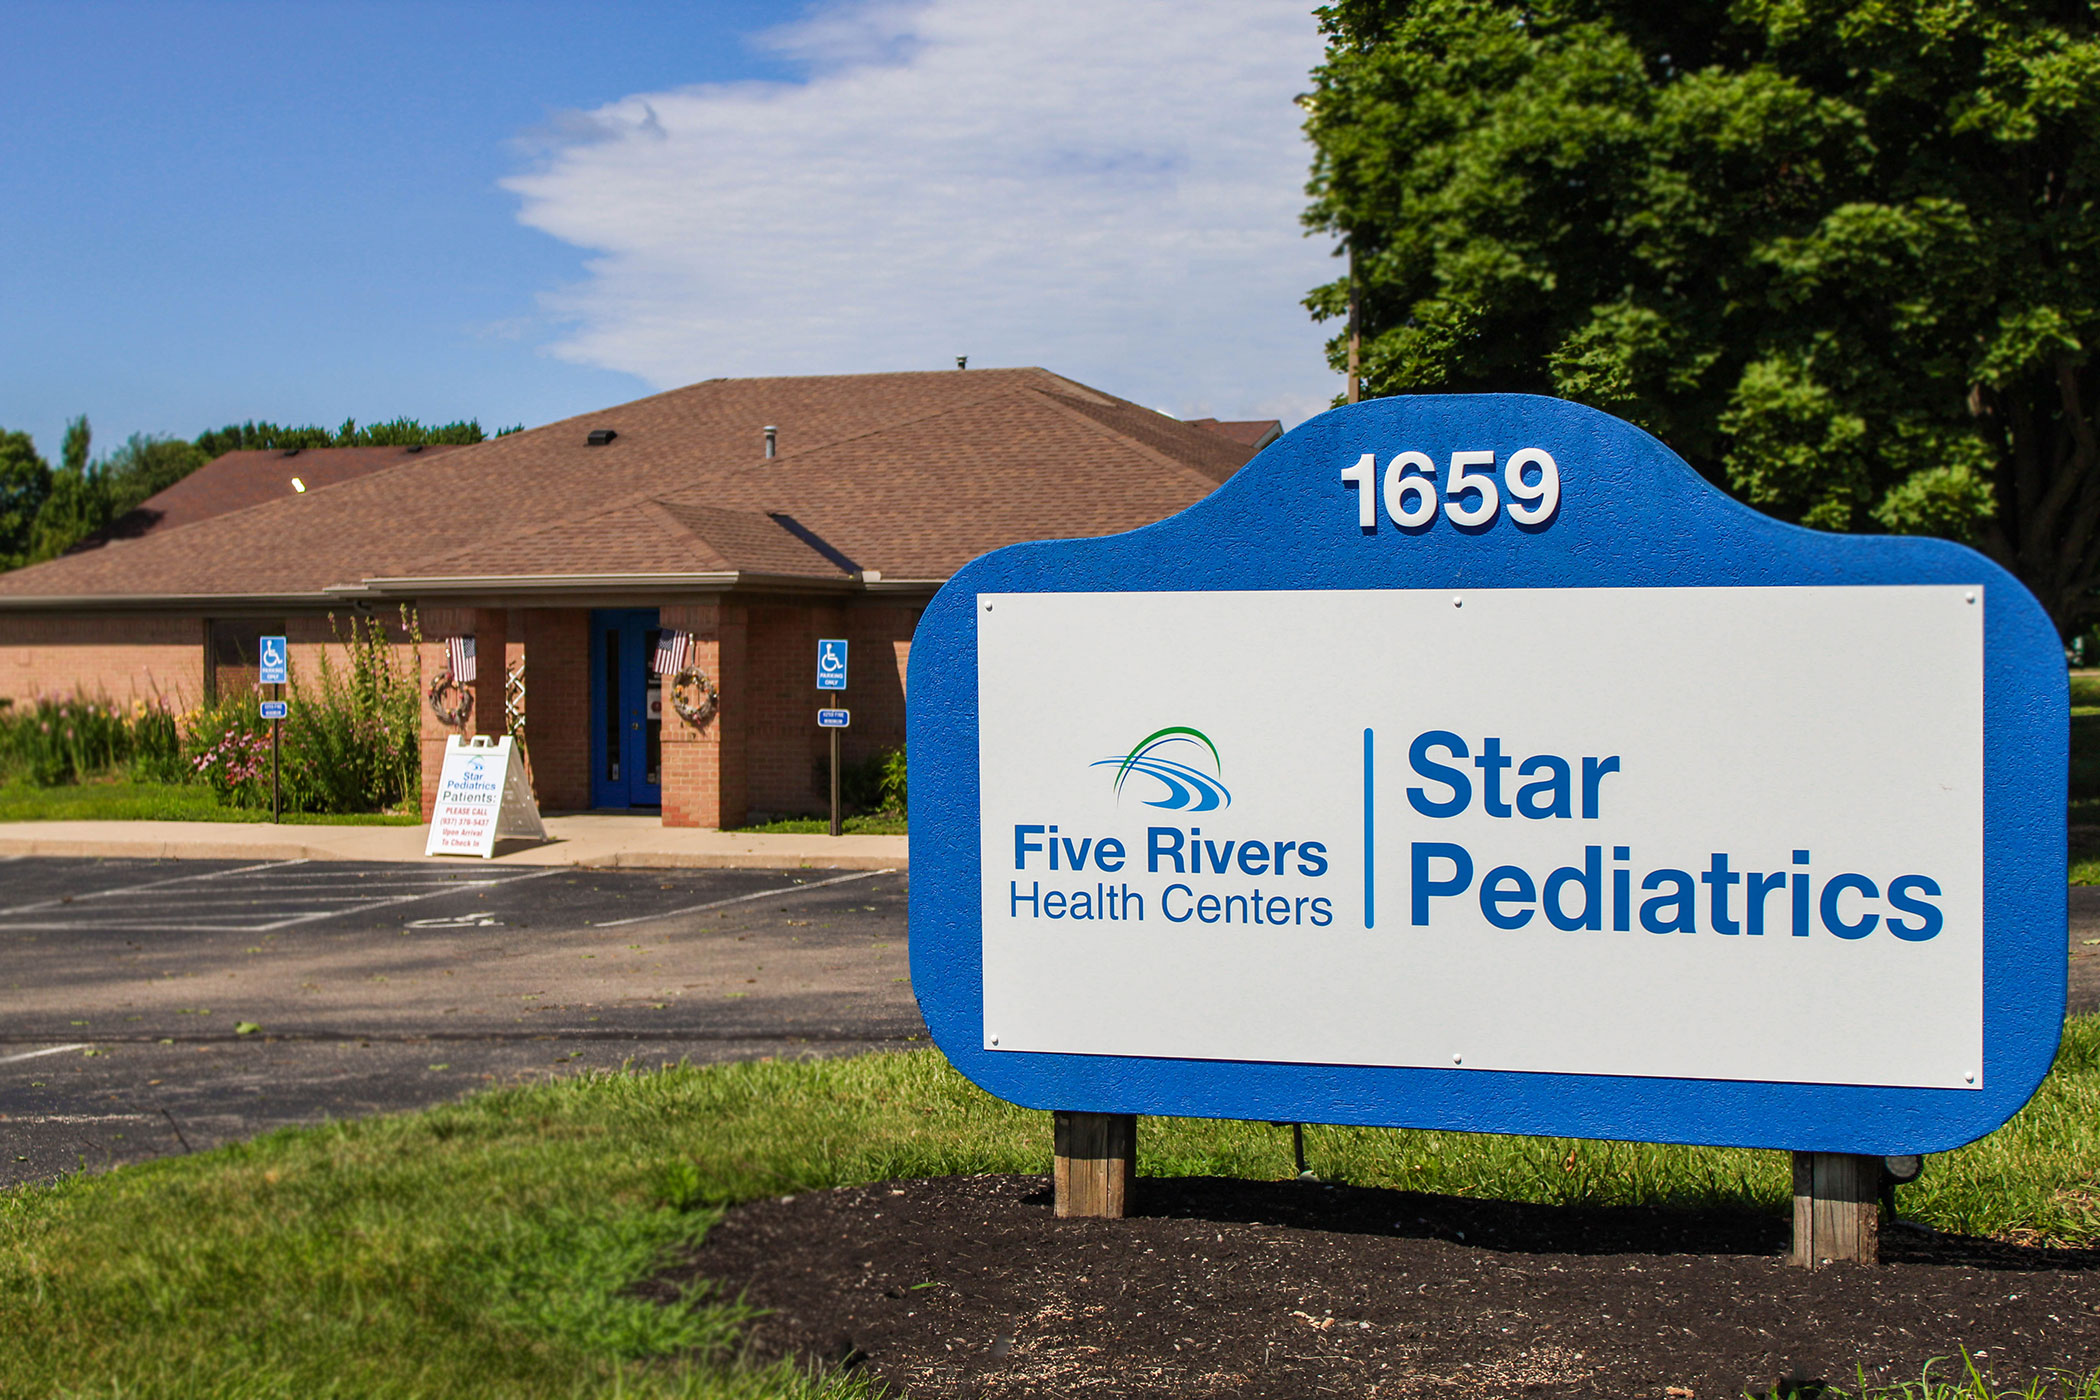 Star Pediatrics